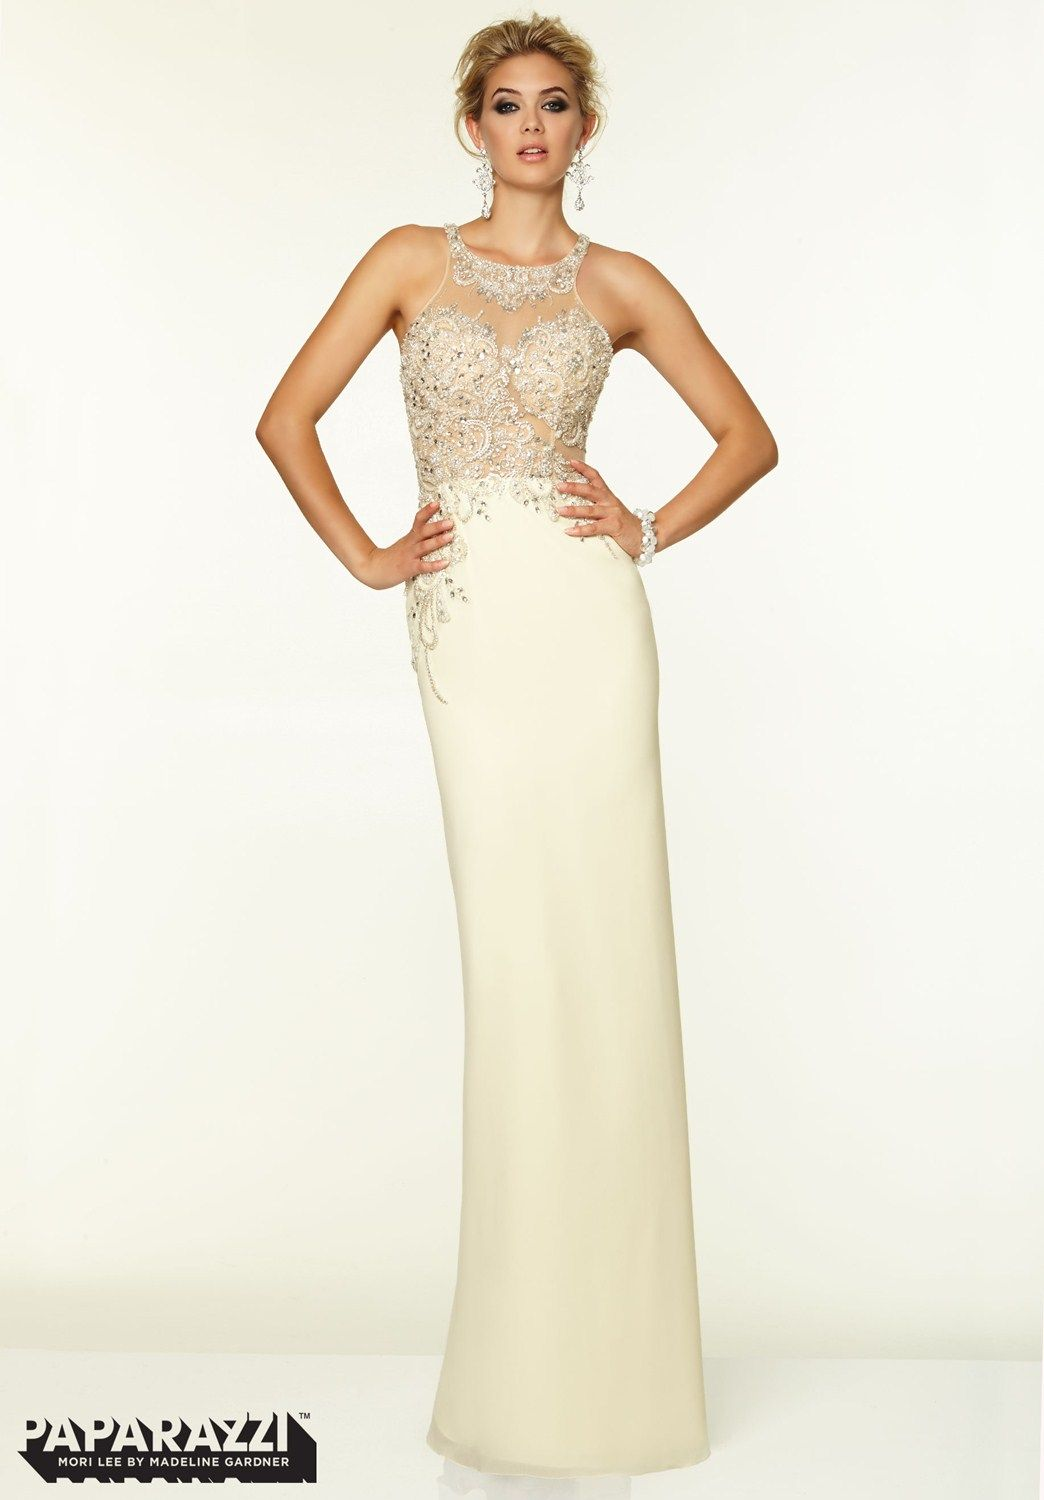 Edgy paparazzi this gown is glamorous instore in ivory size